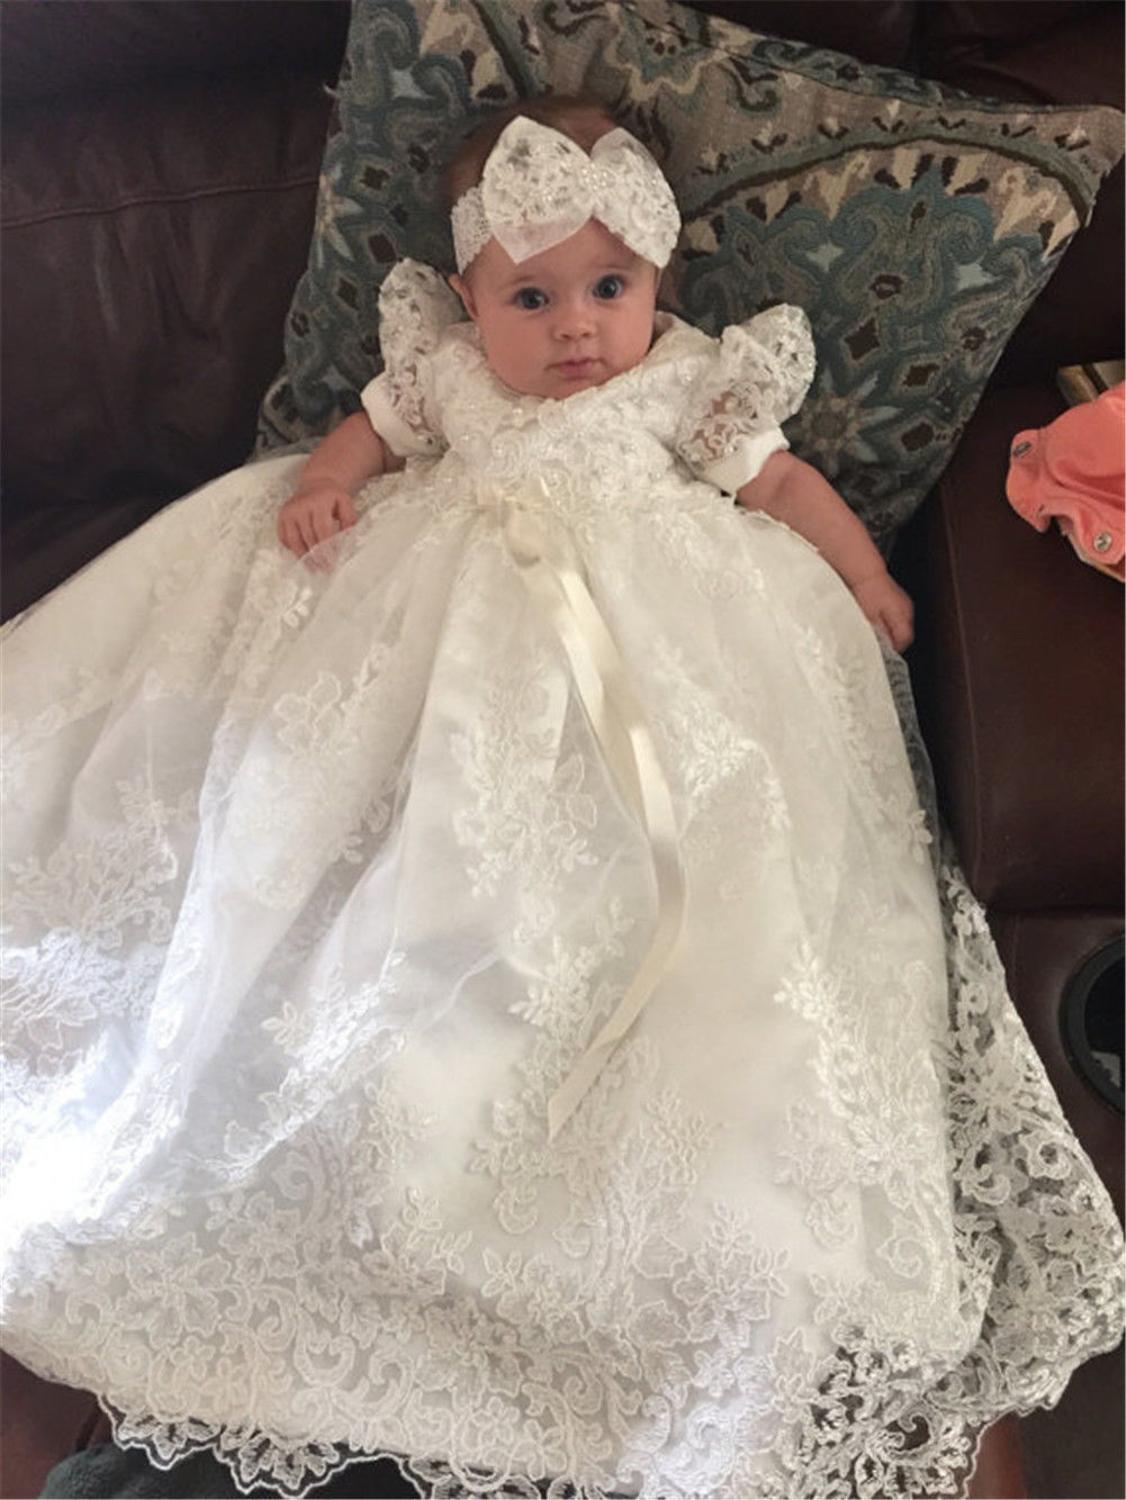 Vintage Cute Kids Lace Christening Dress For Baby Half Sleeve Baptism Gown First Communion Dresses With Headflower